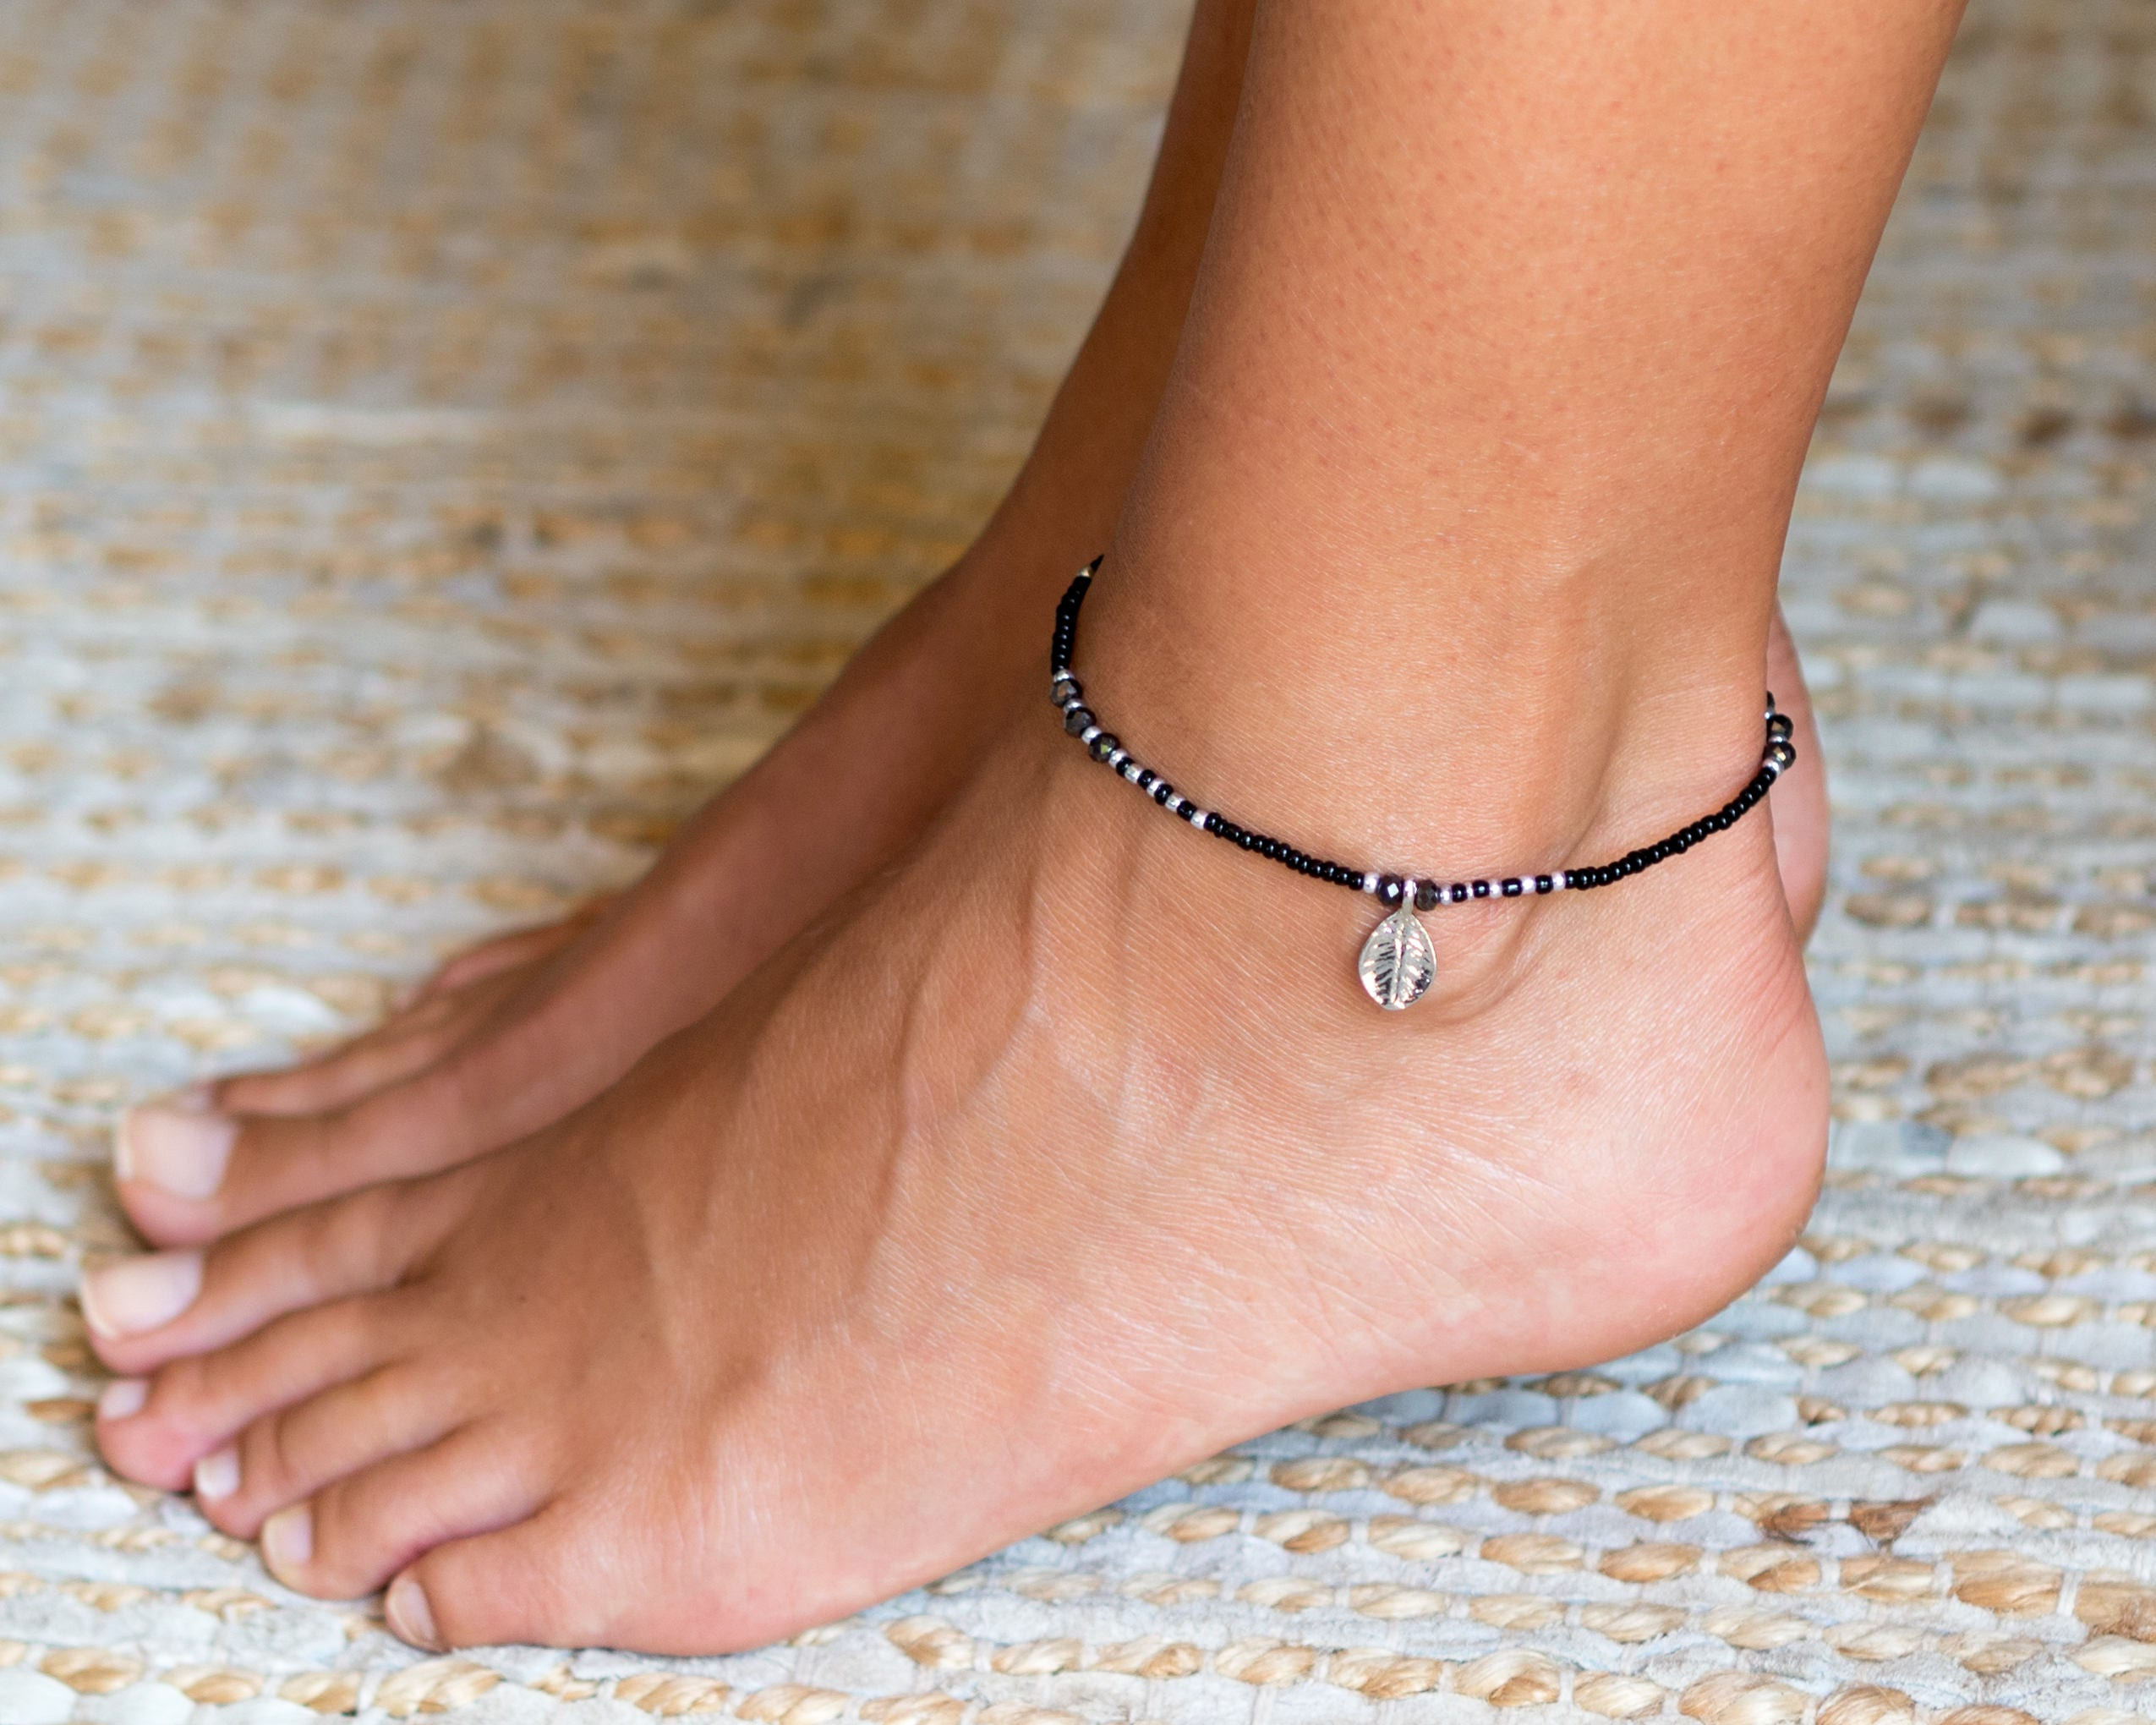 us s bracelets ankle can anklet buy claire where starfish i bracelet